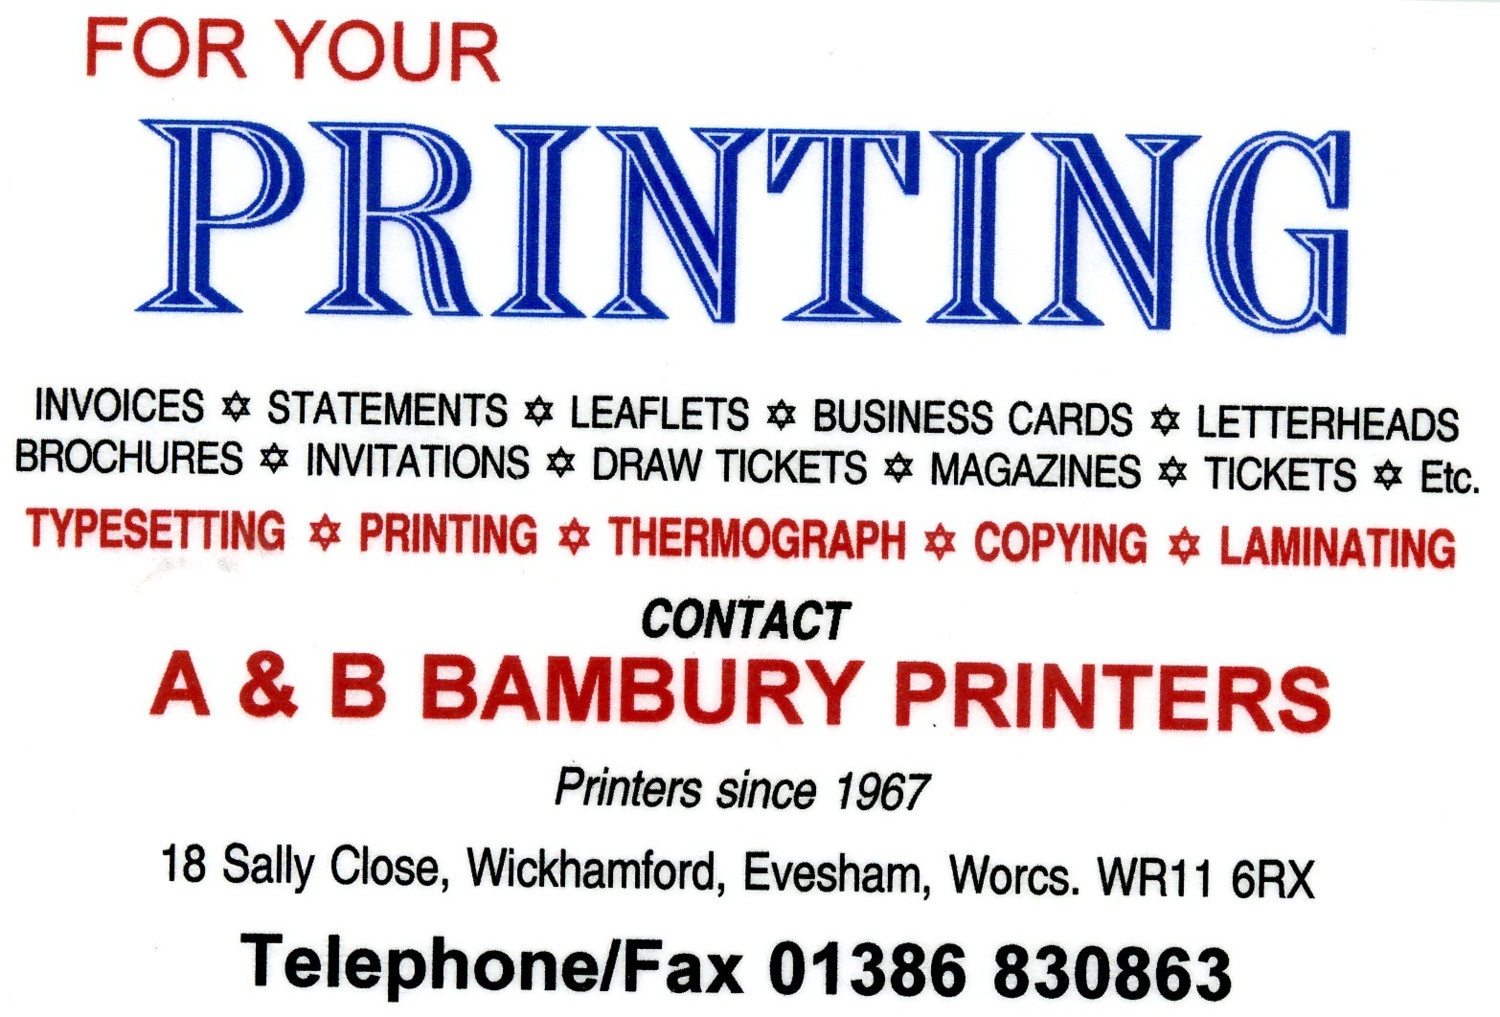 A & B Bambury Printers - business card   The Badsey Archive ...